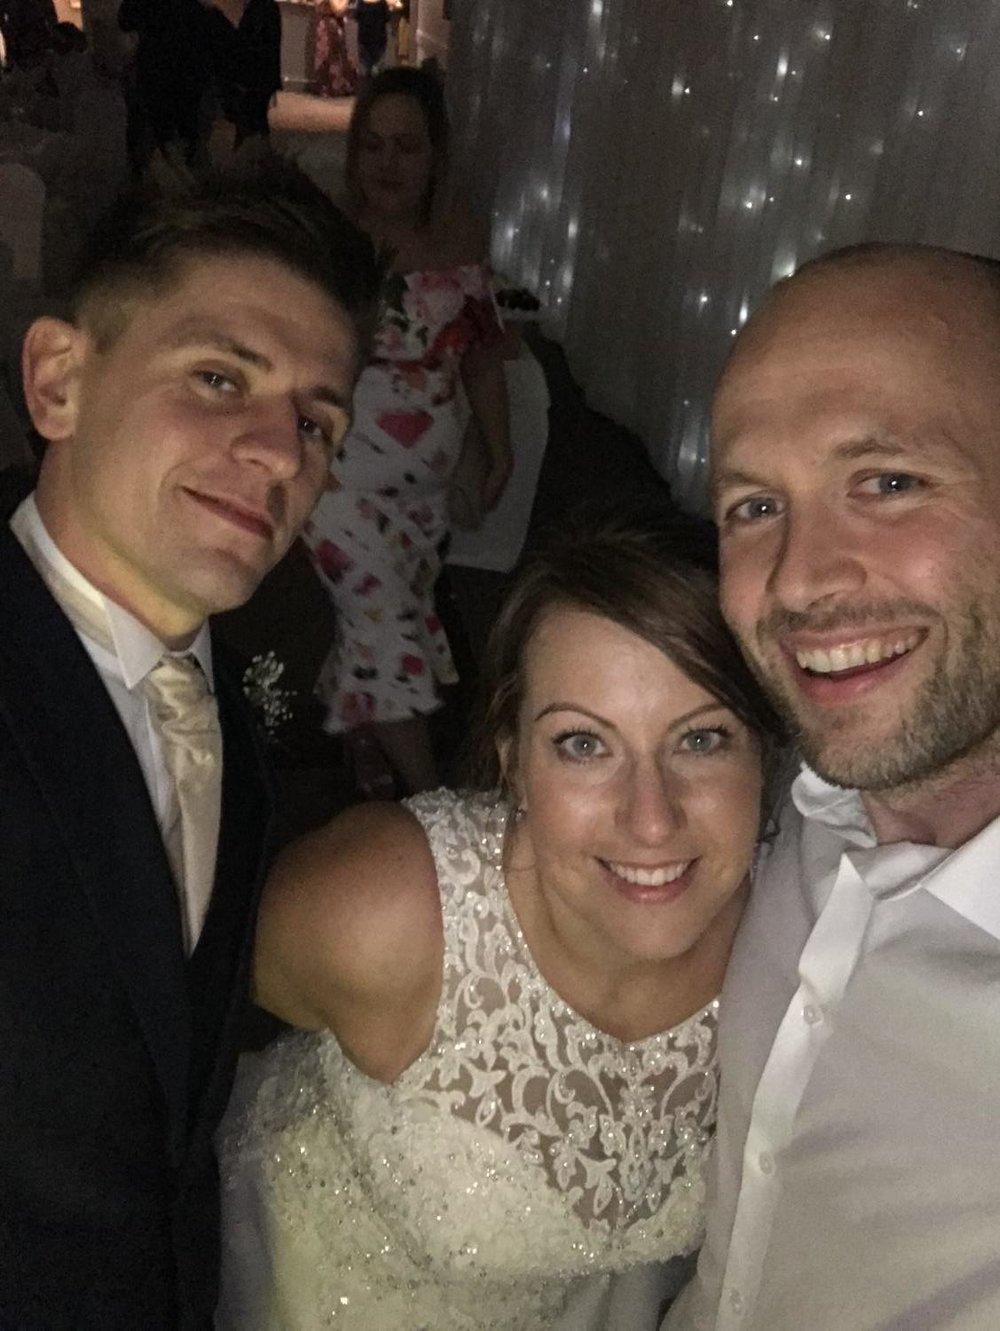 philip warren selfie with bride and groom